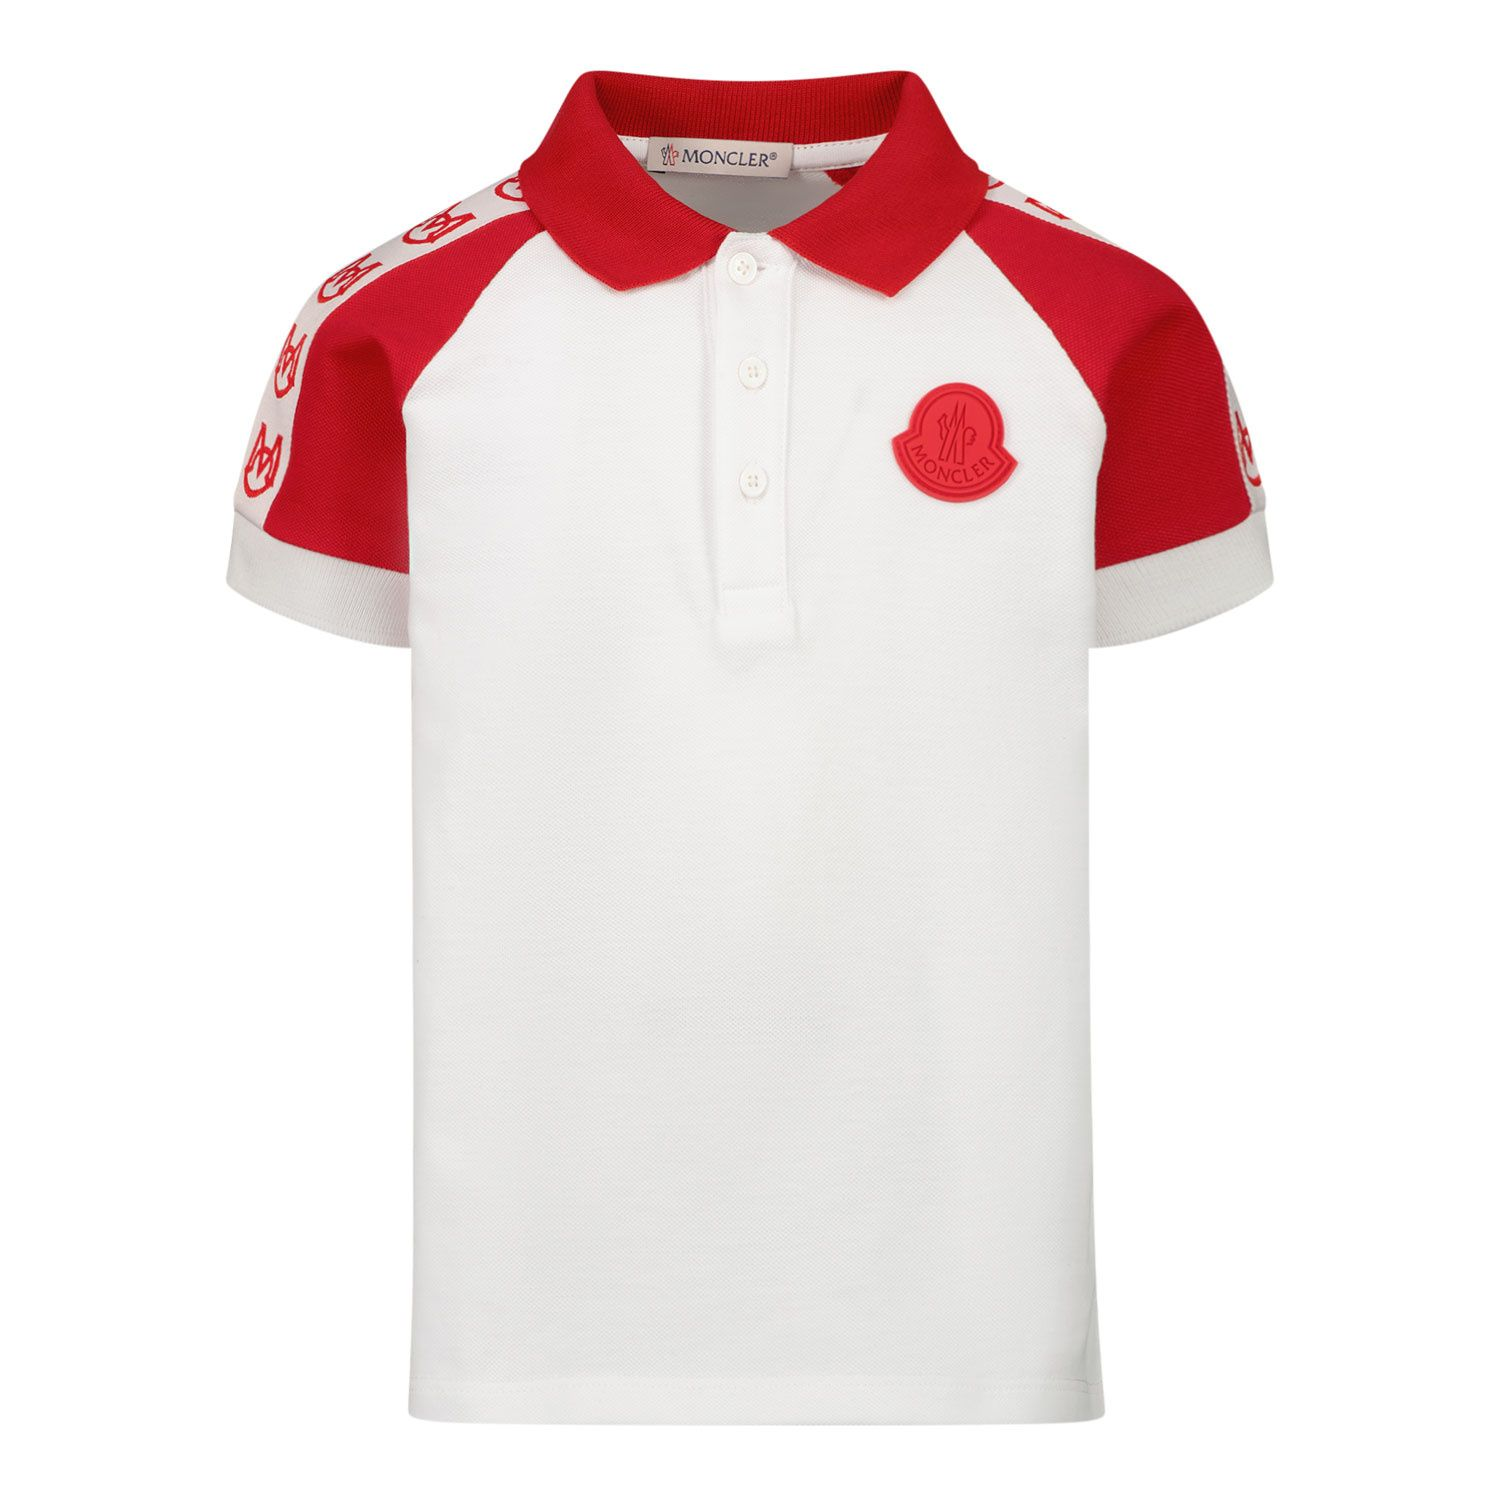 Picture of Moncler 8A70520 baby poloshirt white